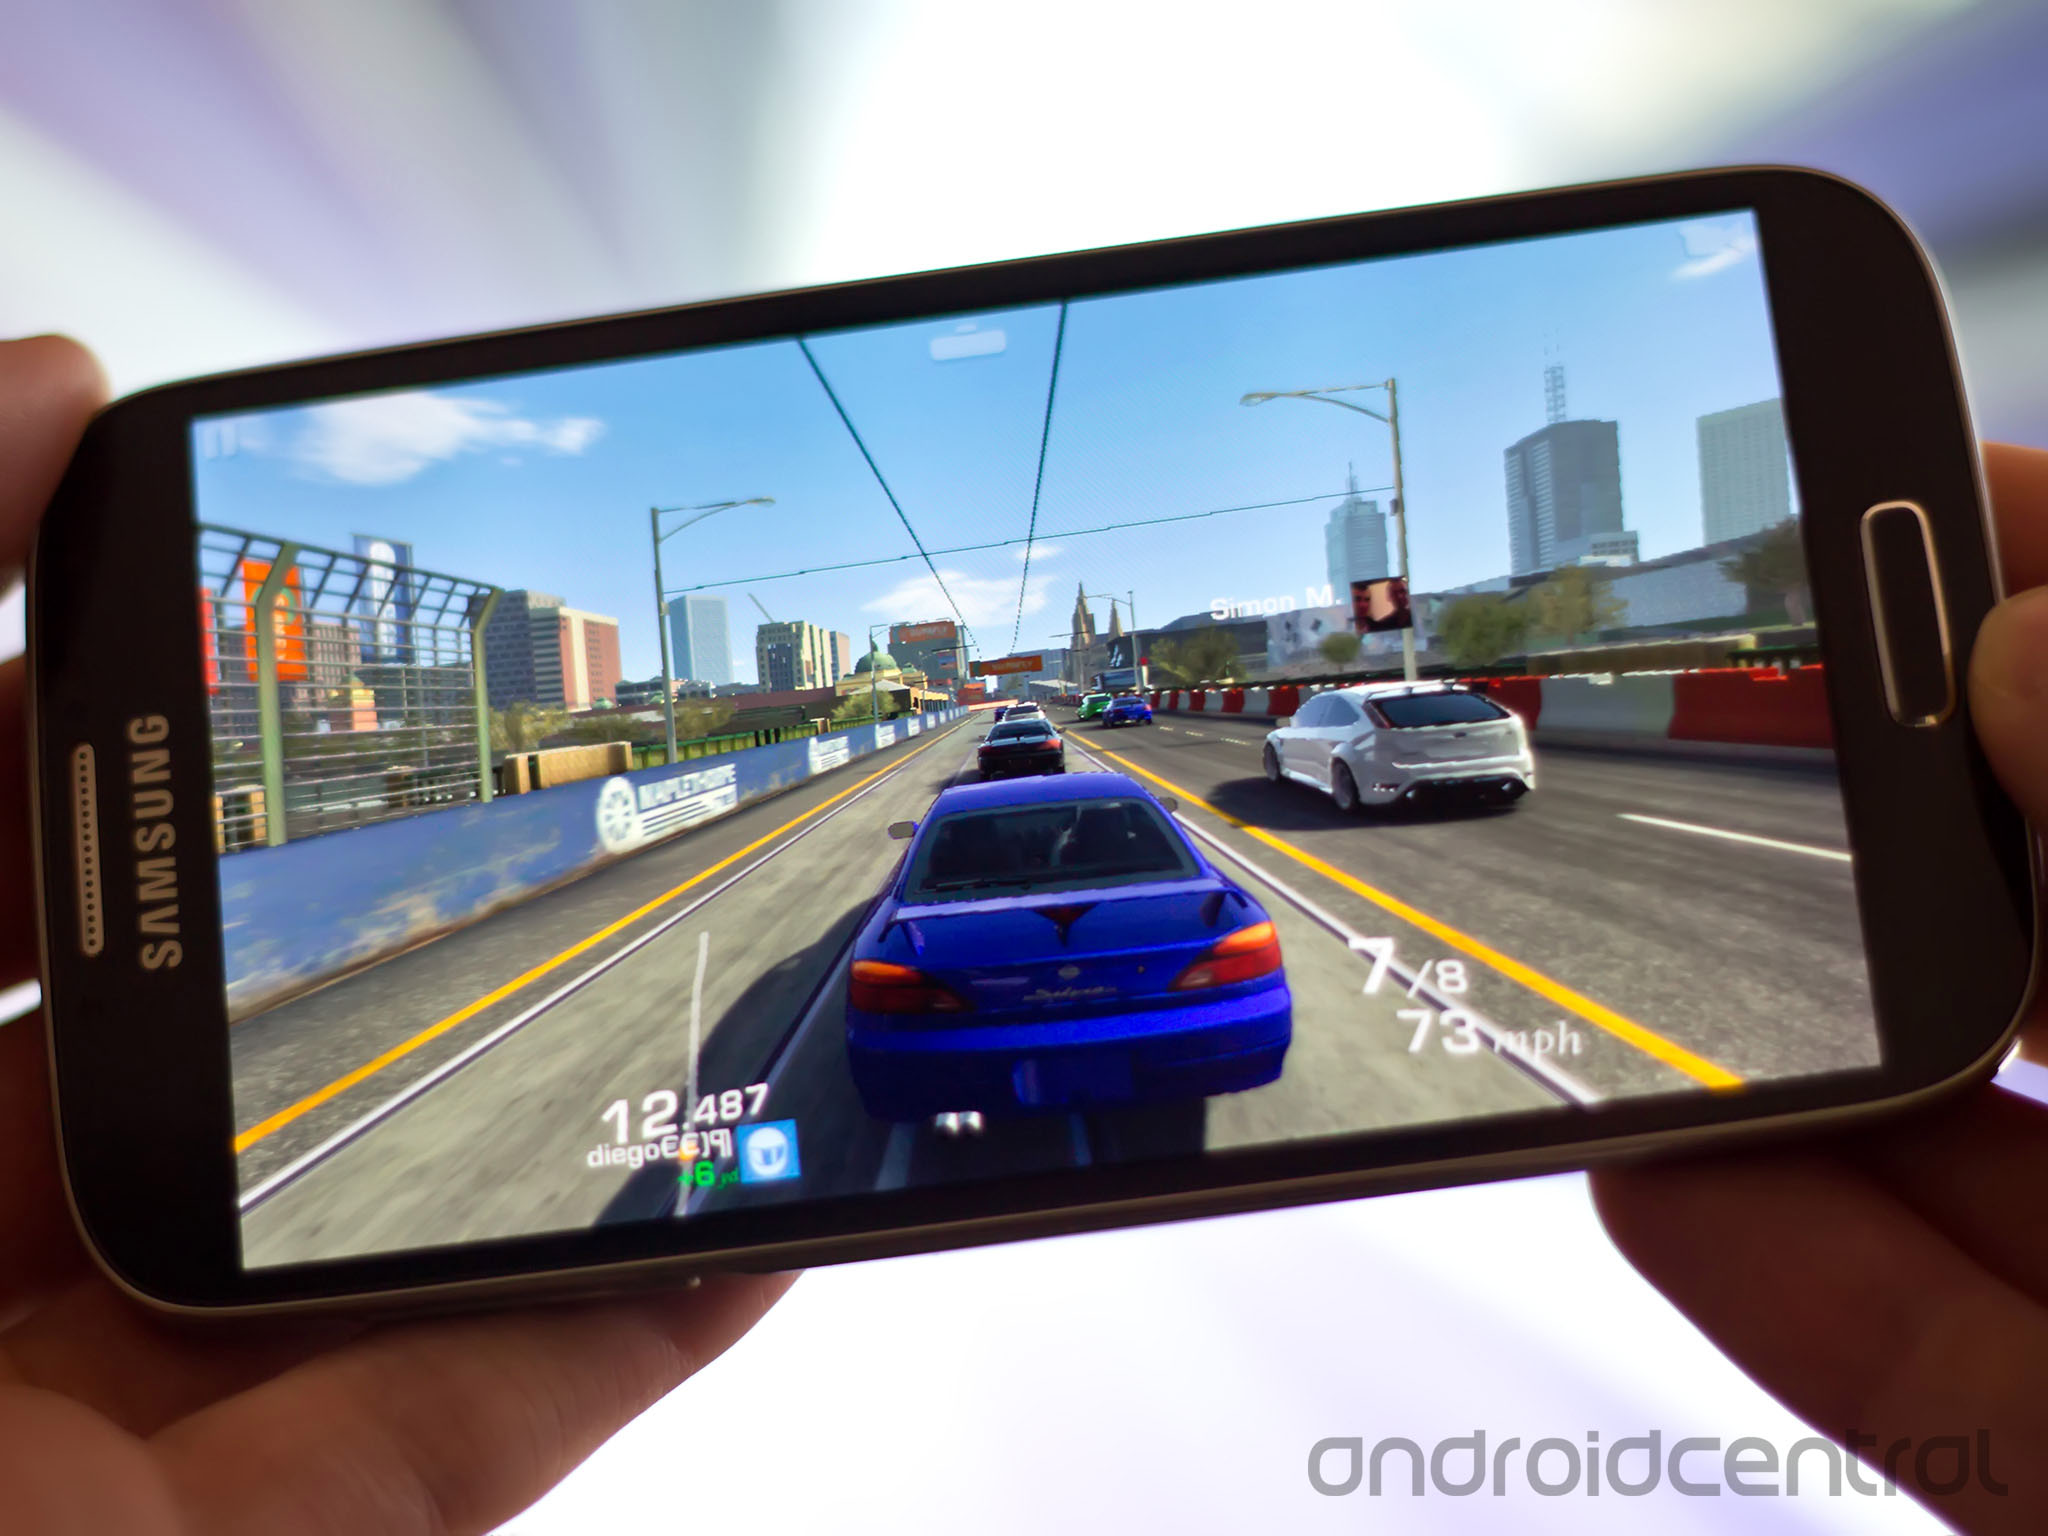 Phone Racing Games For Android Phones the best free android racing games central real 3